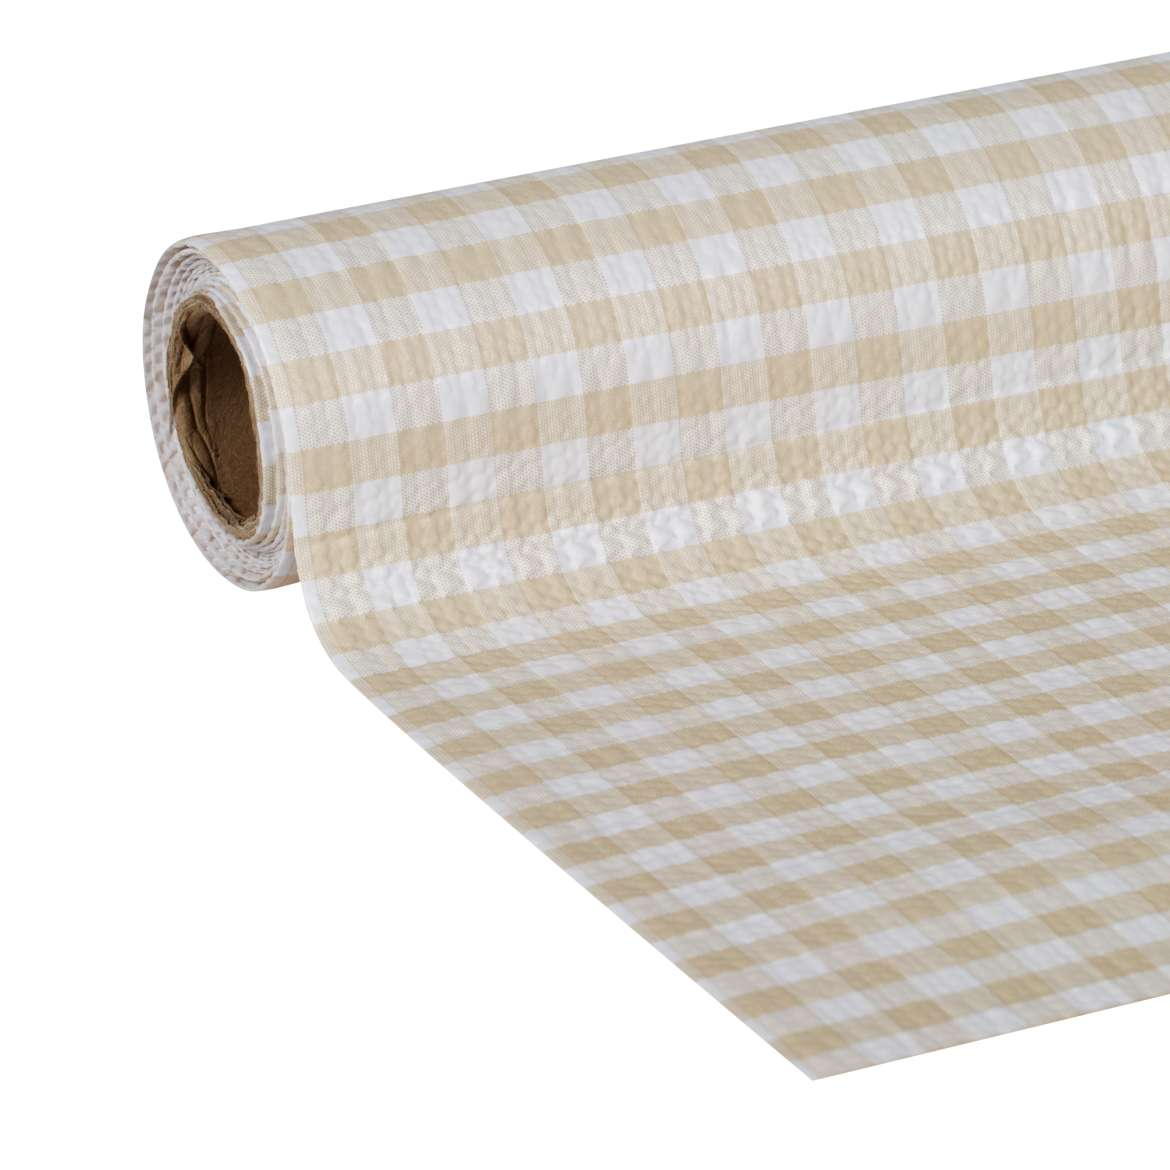 Duck Brand Smooth Top Easy Liner Brand Shelf Liner - Sandstone Gingham, 20 in. x 6 ft.